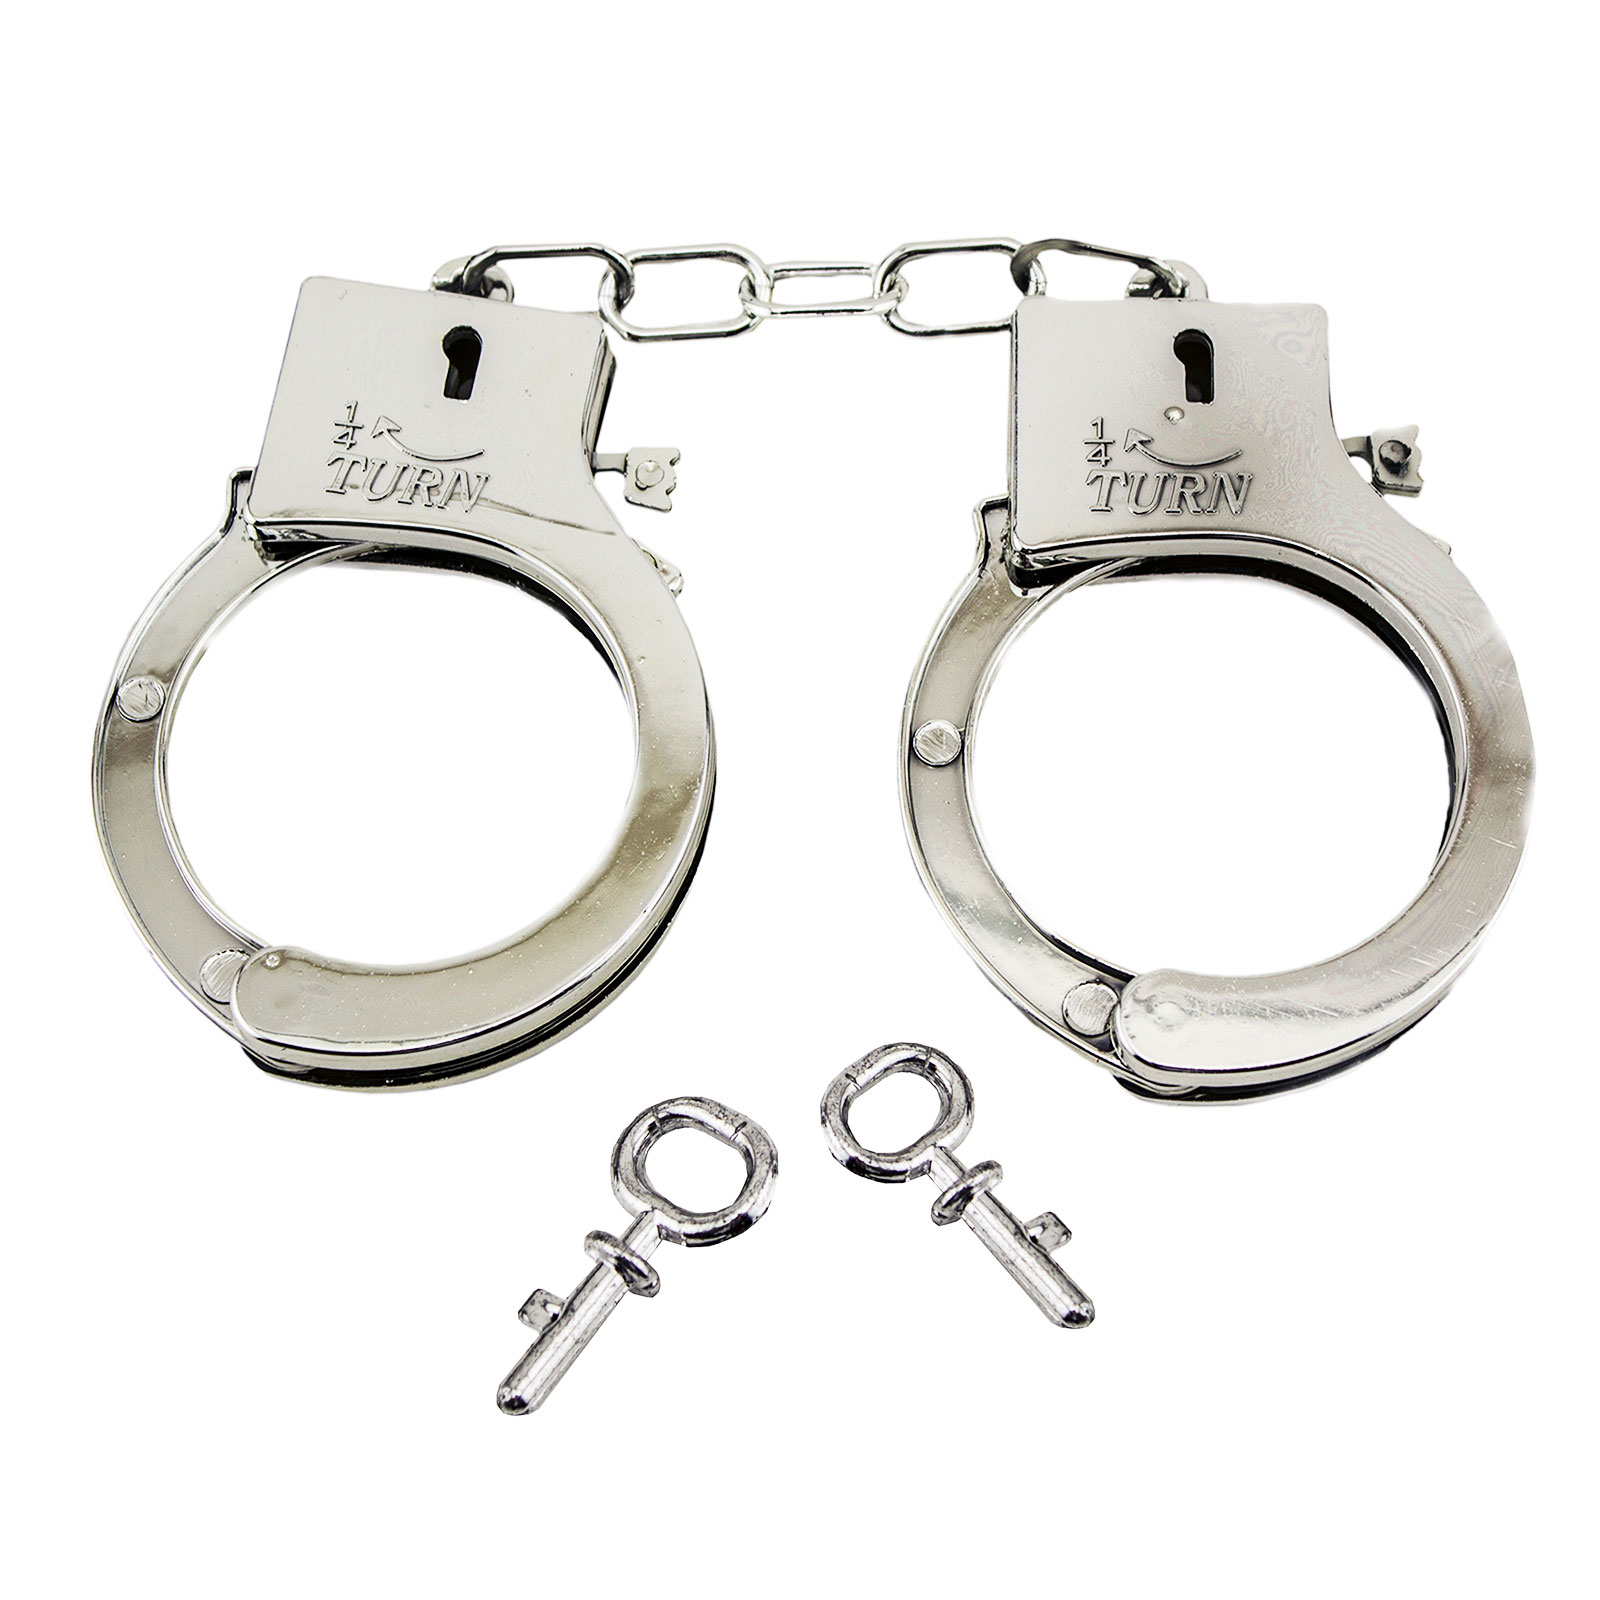 plastic silver toy police cowboy handcuffs with keys halloween prison sheriff costume accessory part